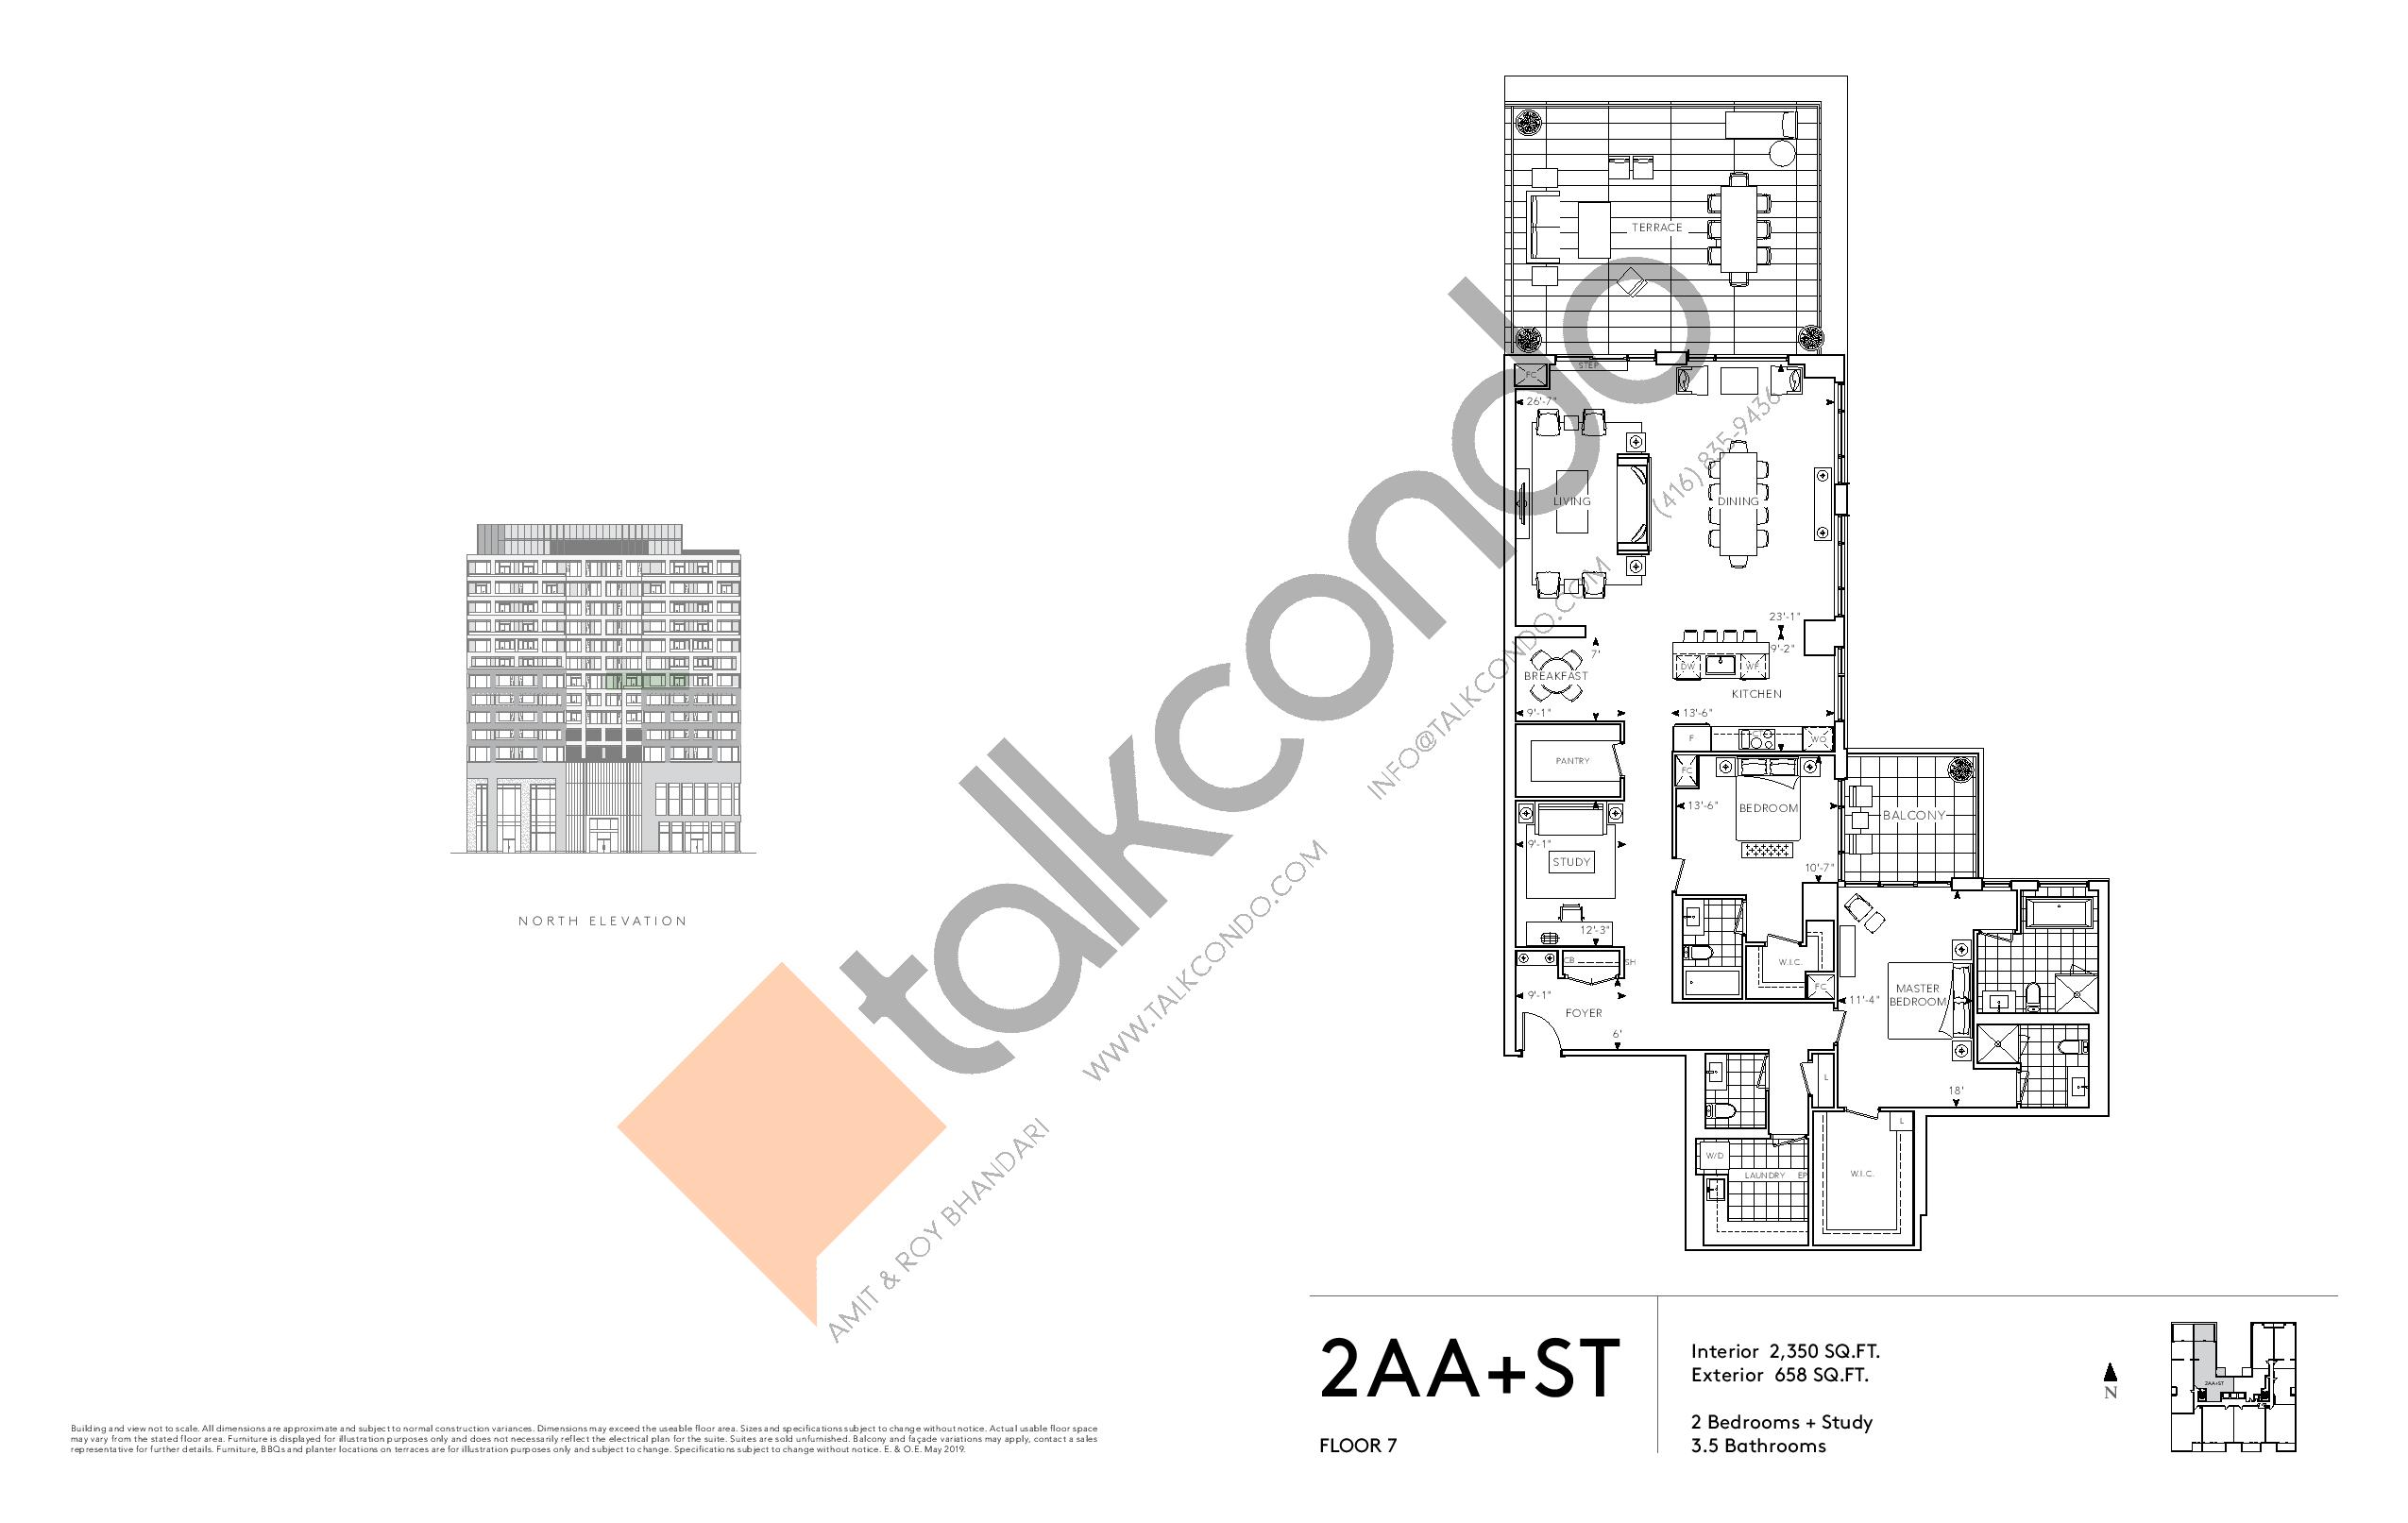 2AA+ST - Signature Series Floor Plan at Tridel at The Well Condos - 2350 sq.ft